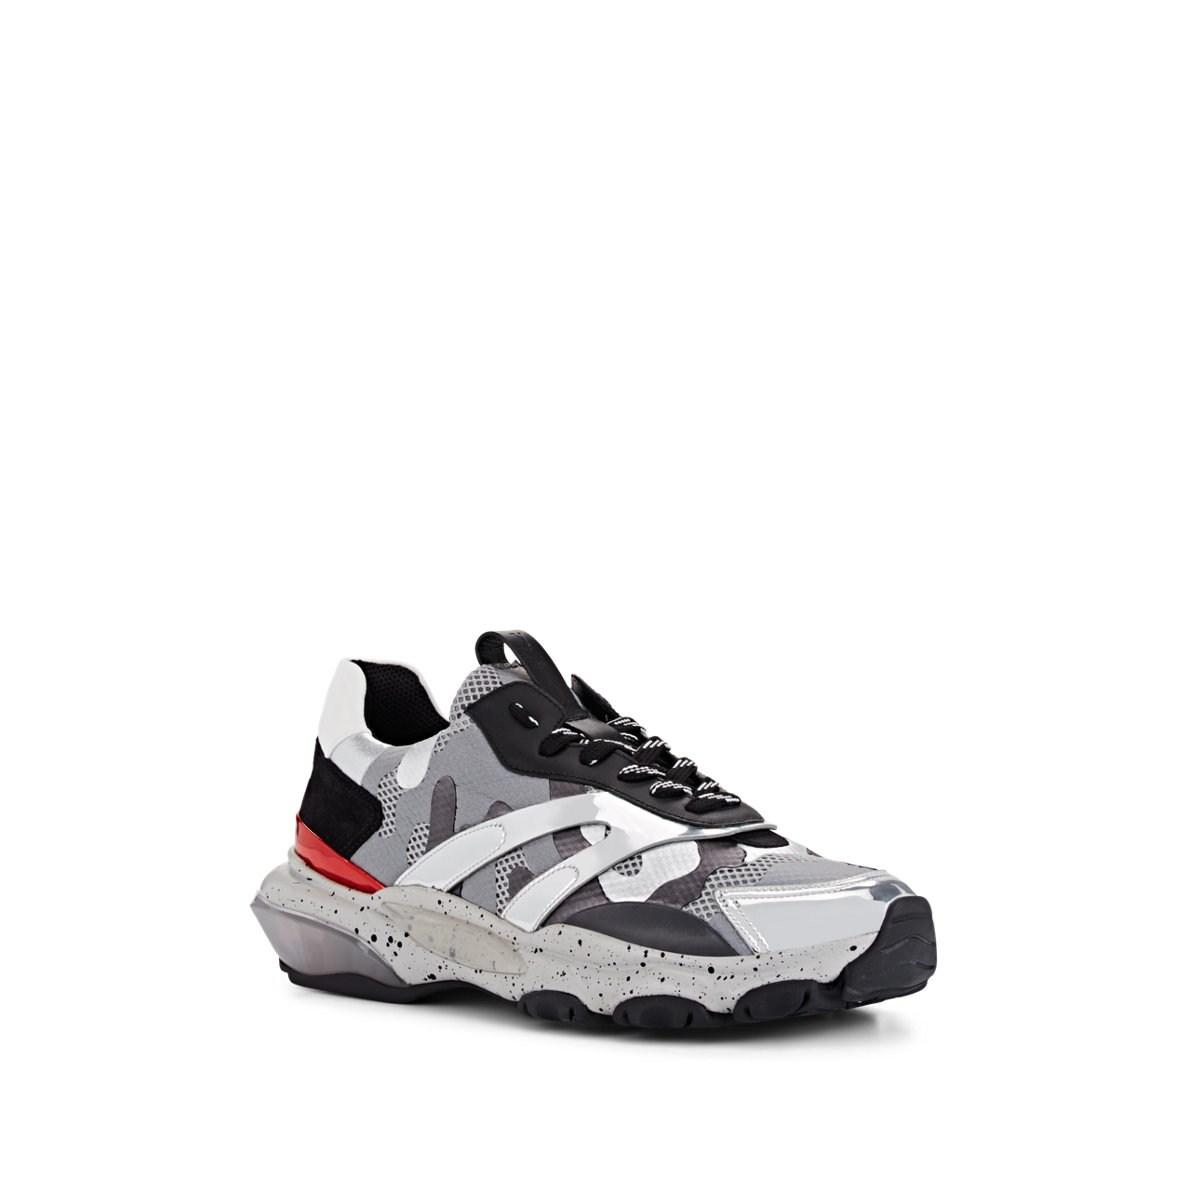 94d27528bf67b Valentino - Multicolor Runway Camouflage Sneakers Size 12 M for Men - Lyst.  View fullscreen